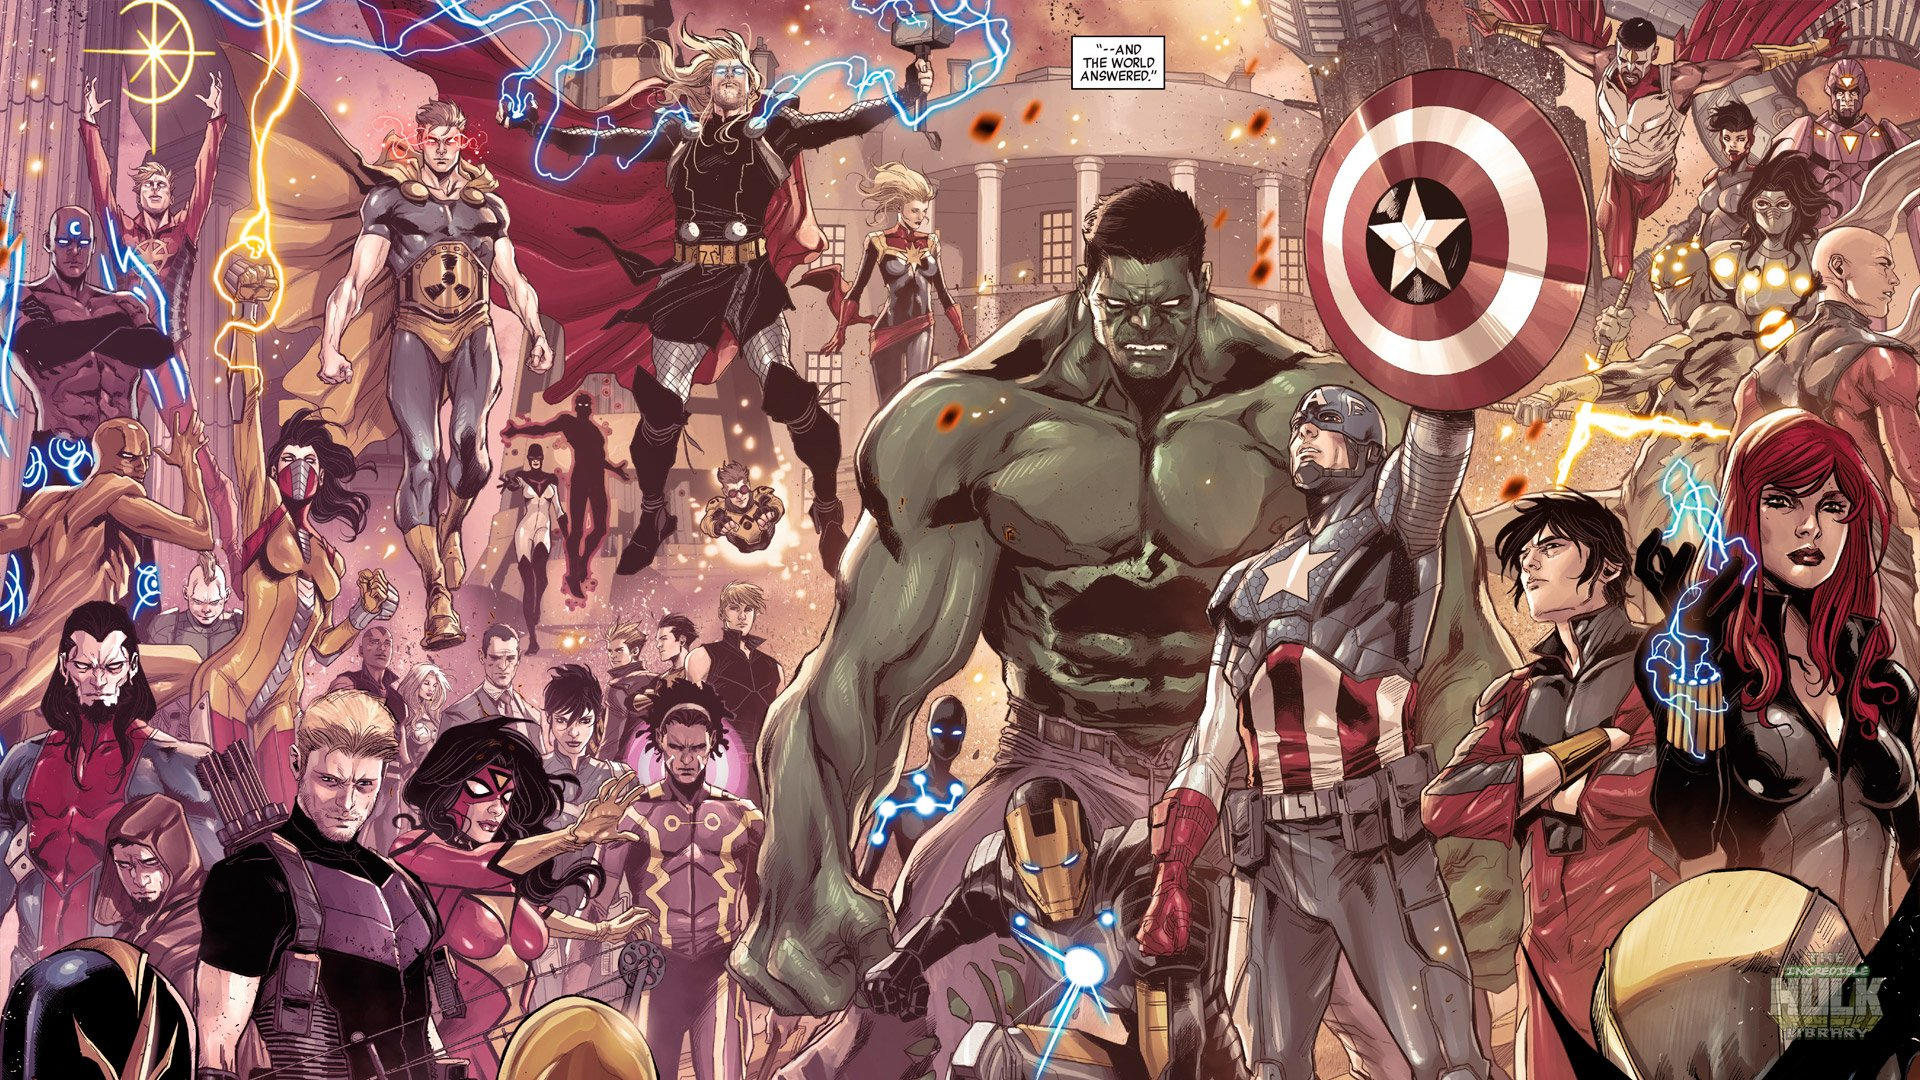 Fondos De Pantalla De Marvel Comics Wallpapers Hd Gratis